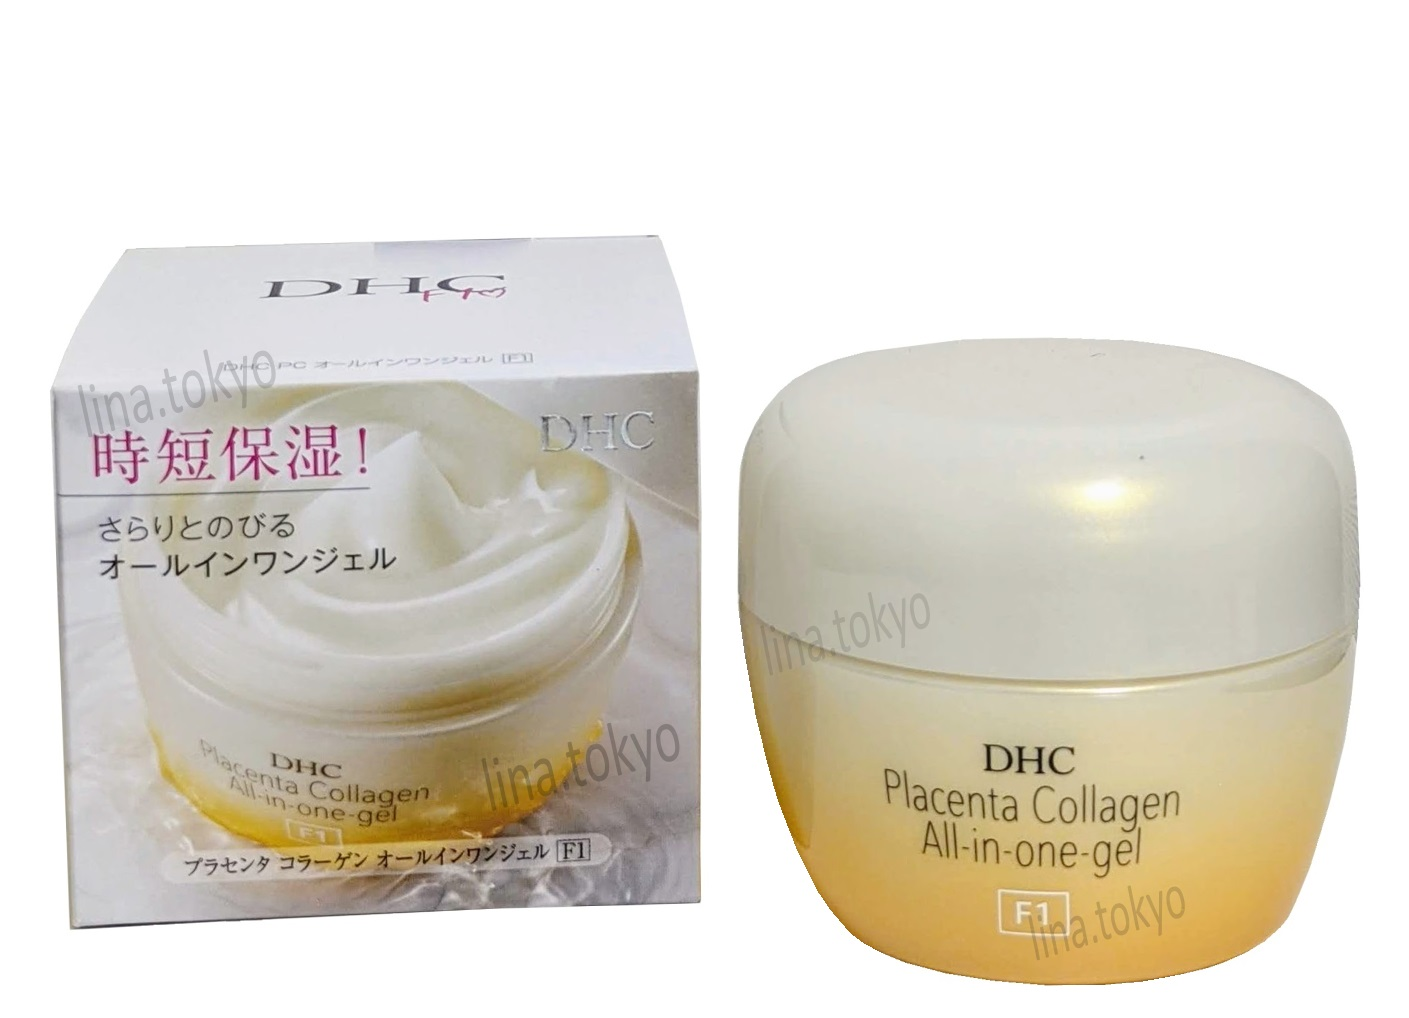 D1454- DHC Placenta Collagen All in one gel 100g